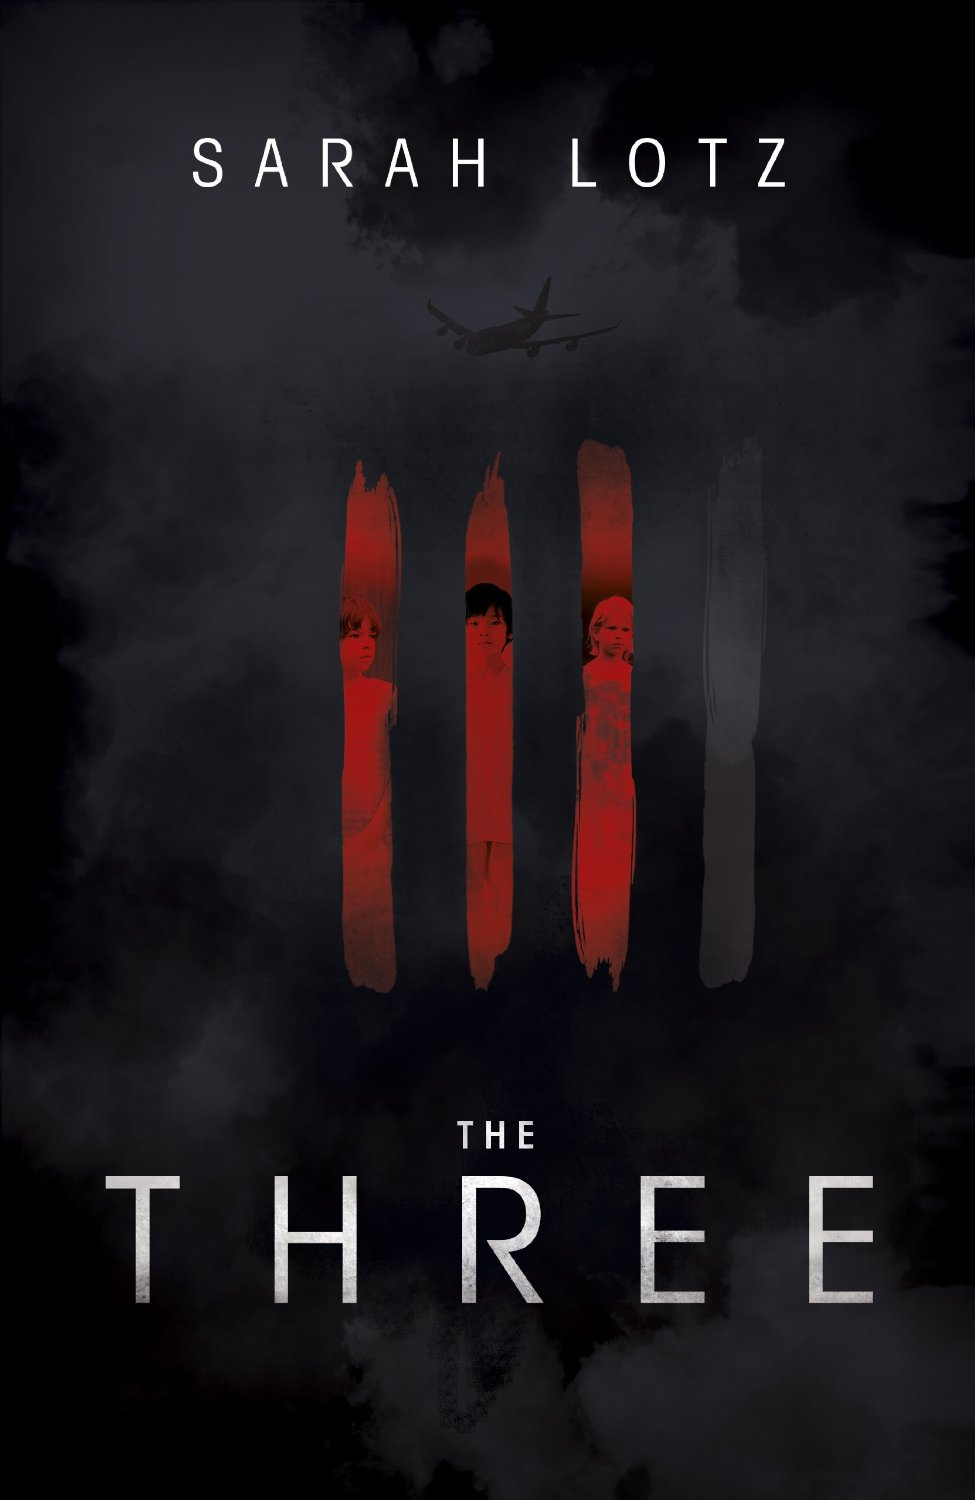 The Three by Sarah Lotz